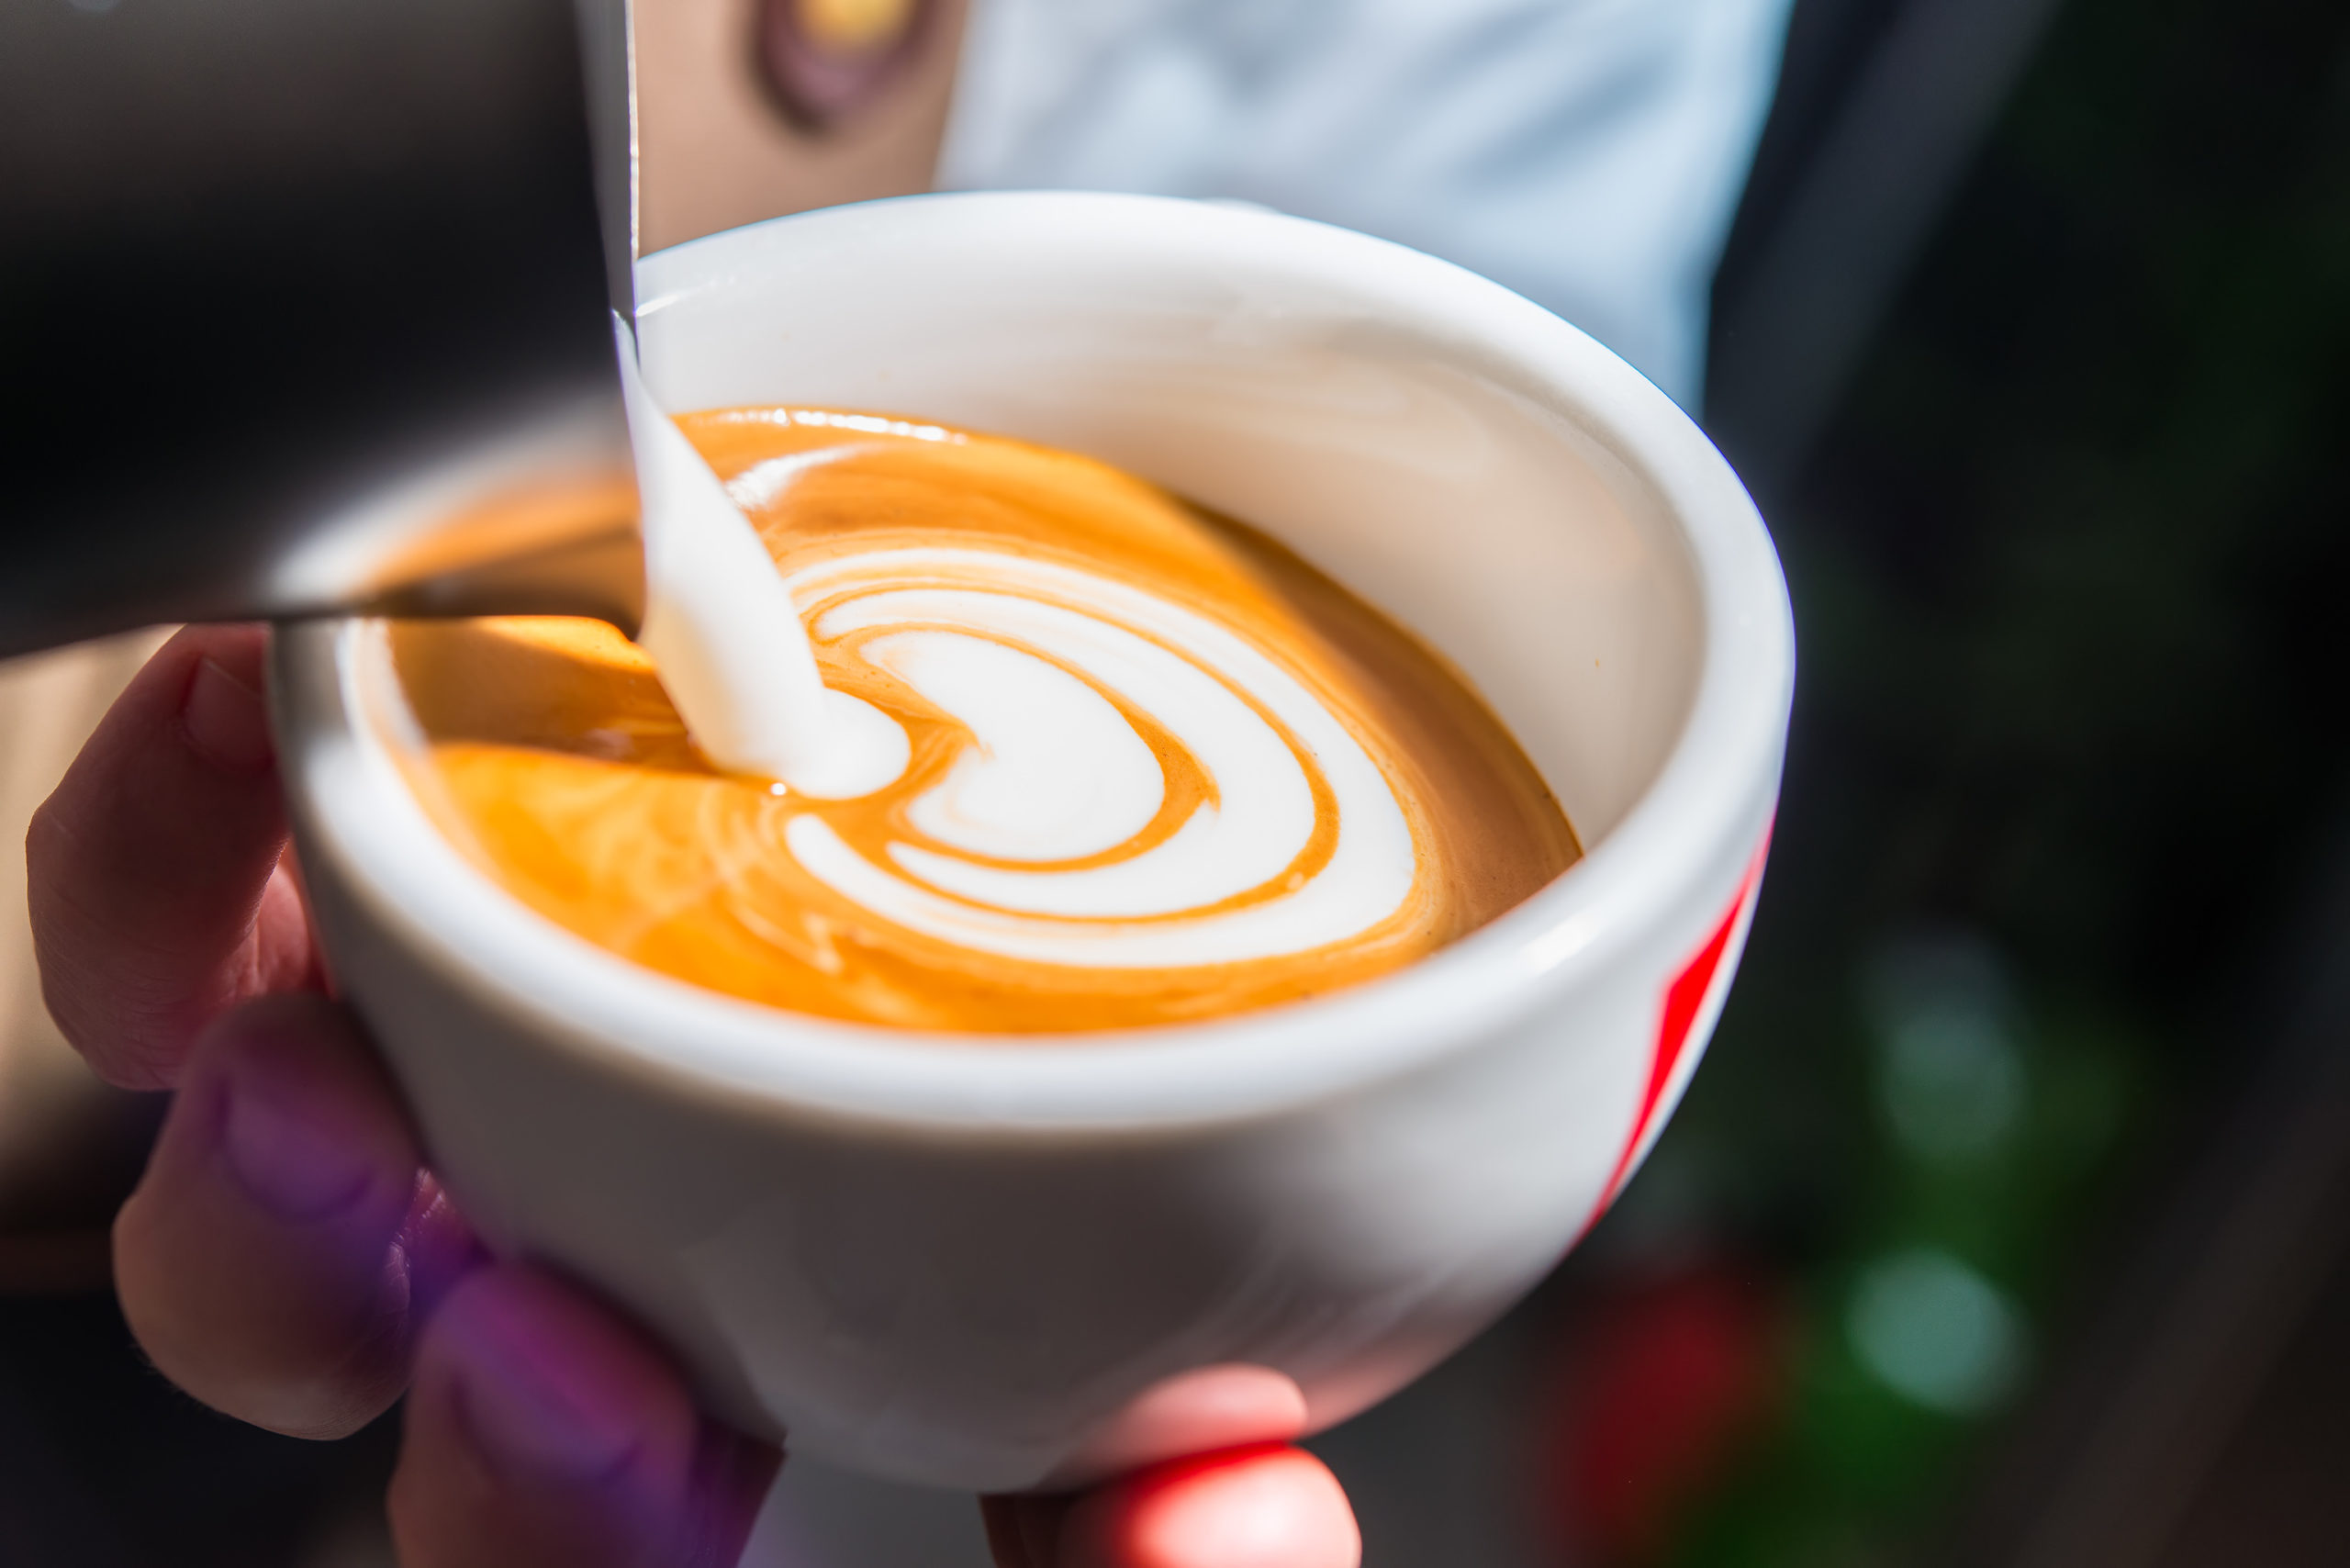 How to Choose from Frothed or Steamed Milk